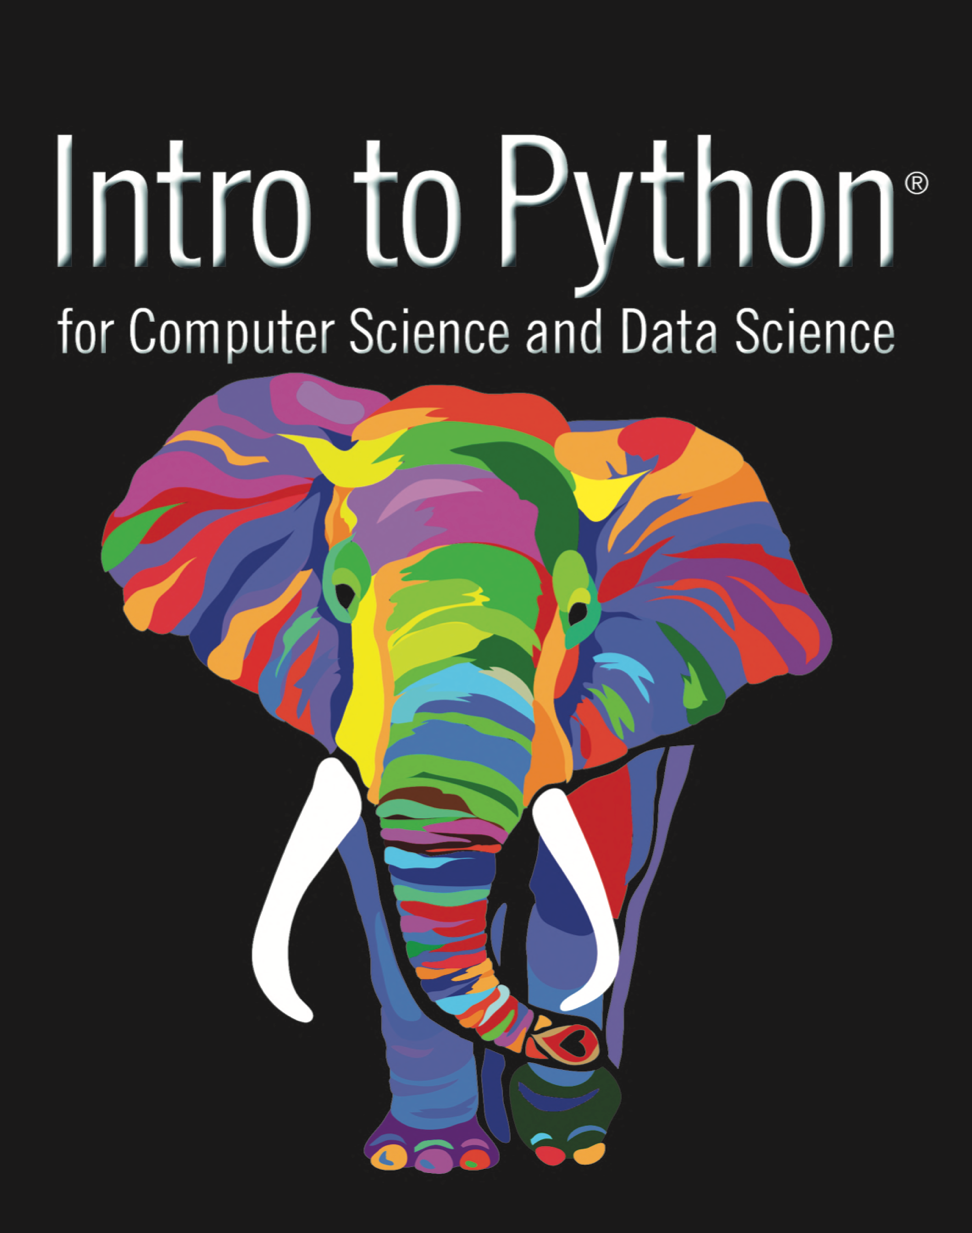 Intro to Python for Computer Science and Data Science at Social-Media.press